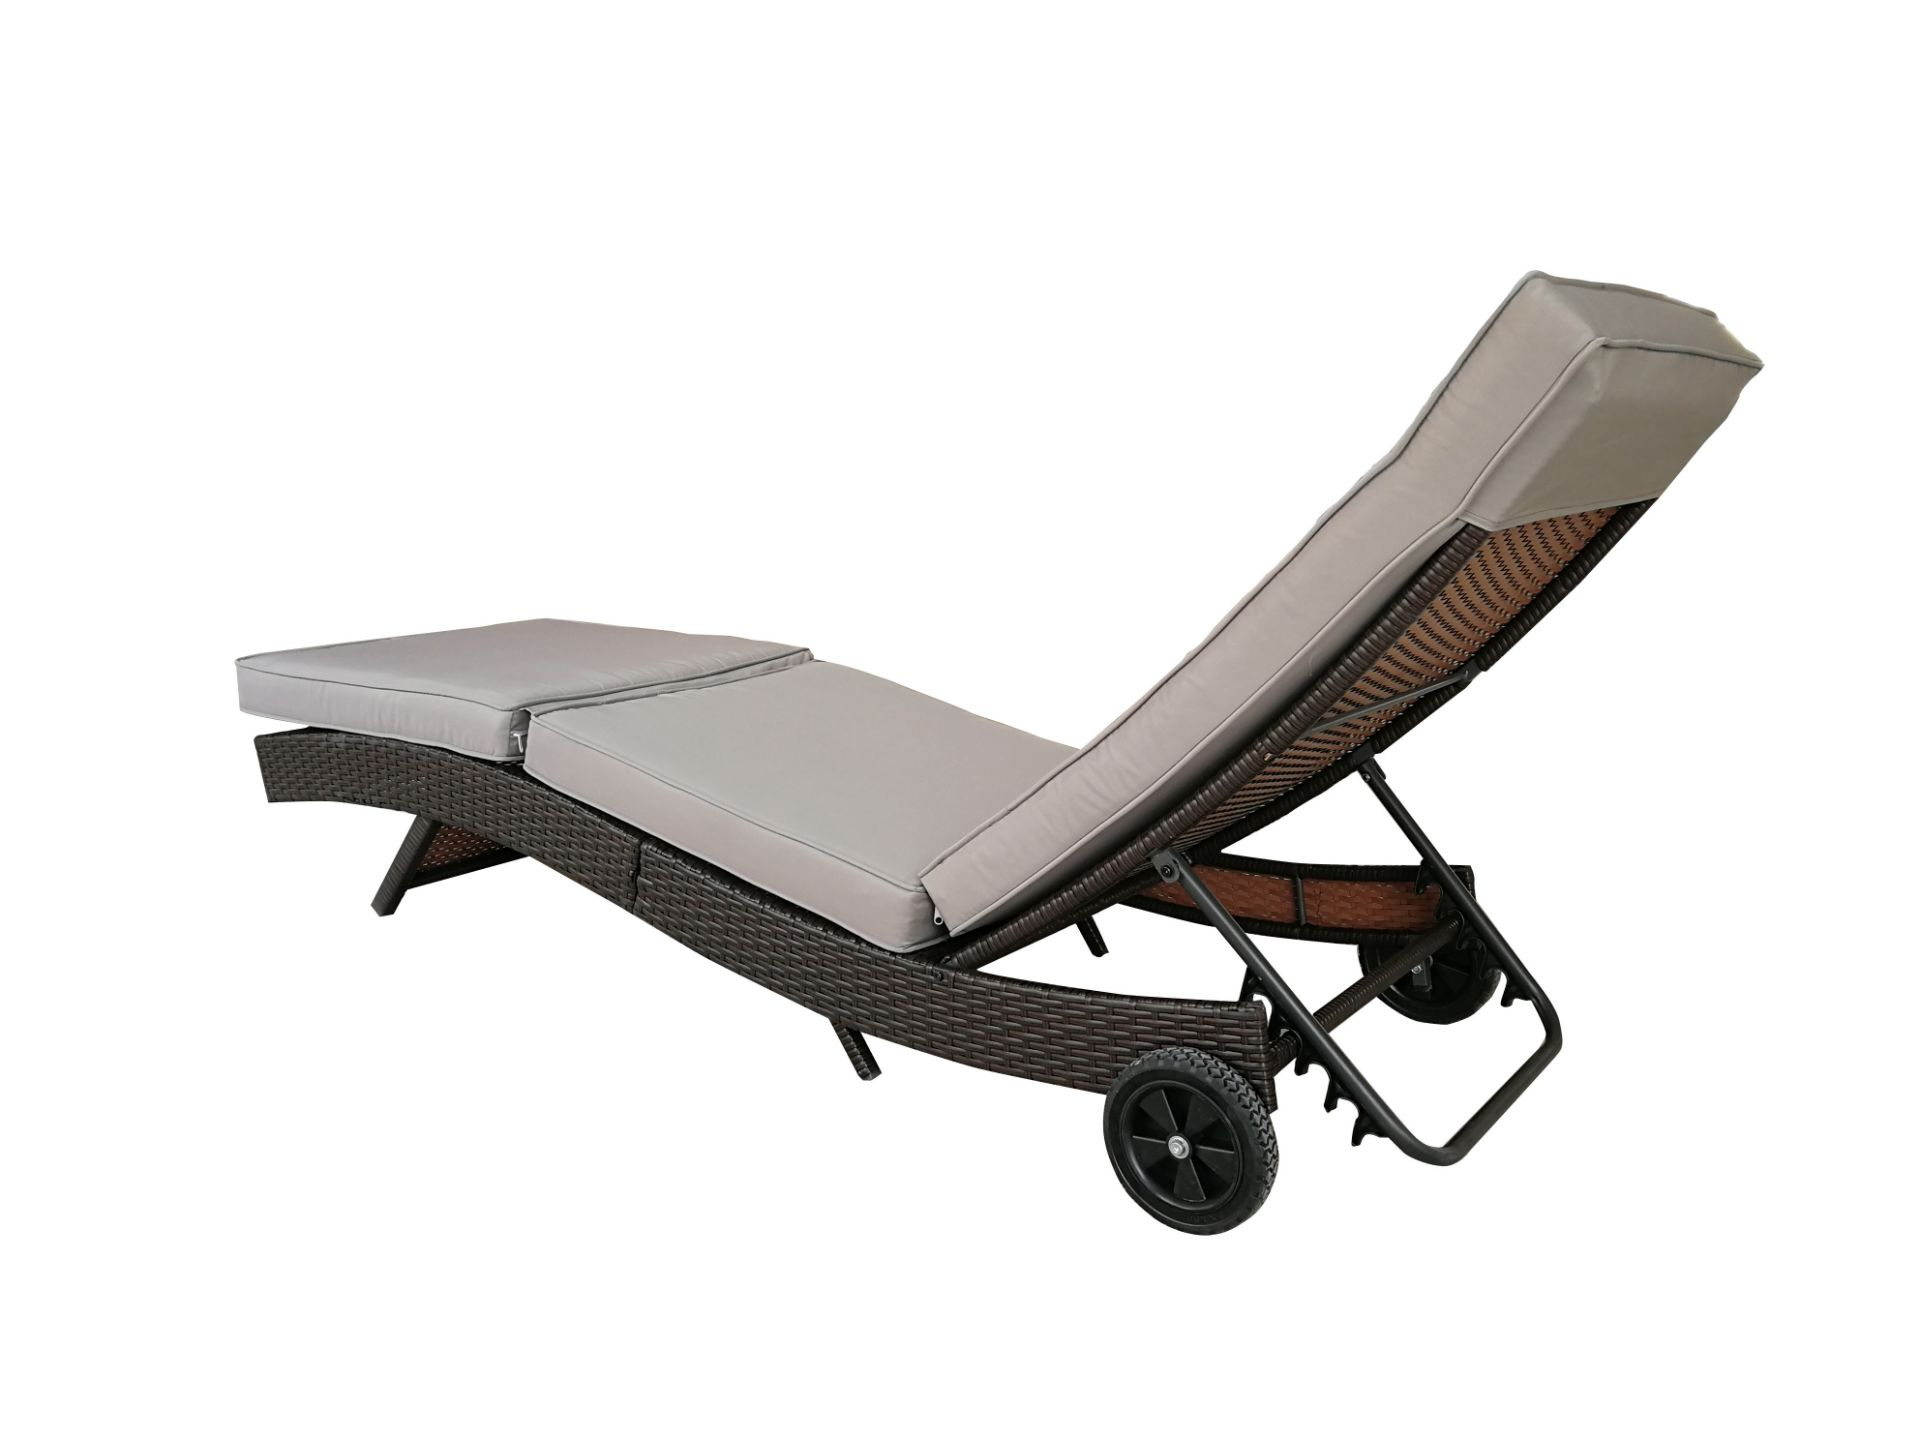 + VAT Brand New Chelsea Garden Company Dark Brown Rattan Sunbed - Steel Framed - Include Cushion - - Image 3 of 5